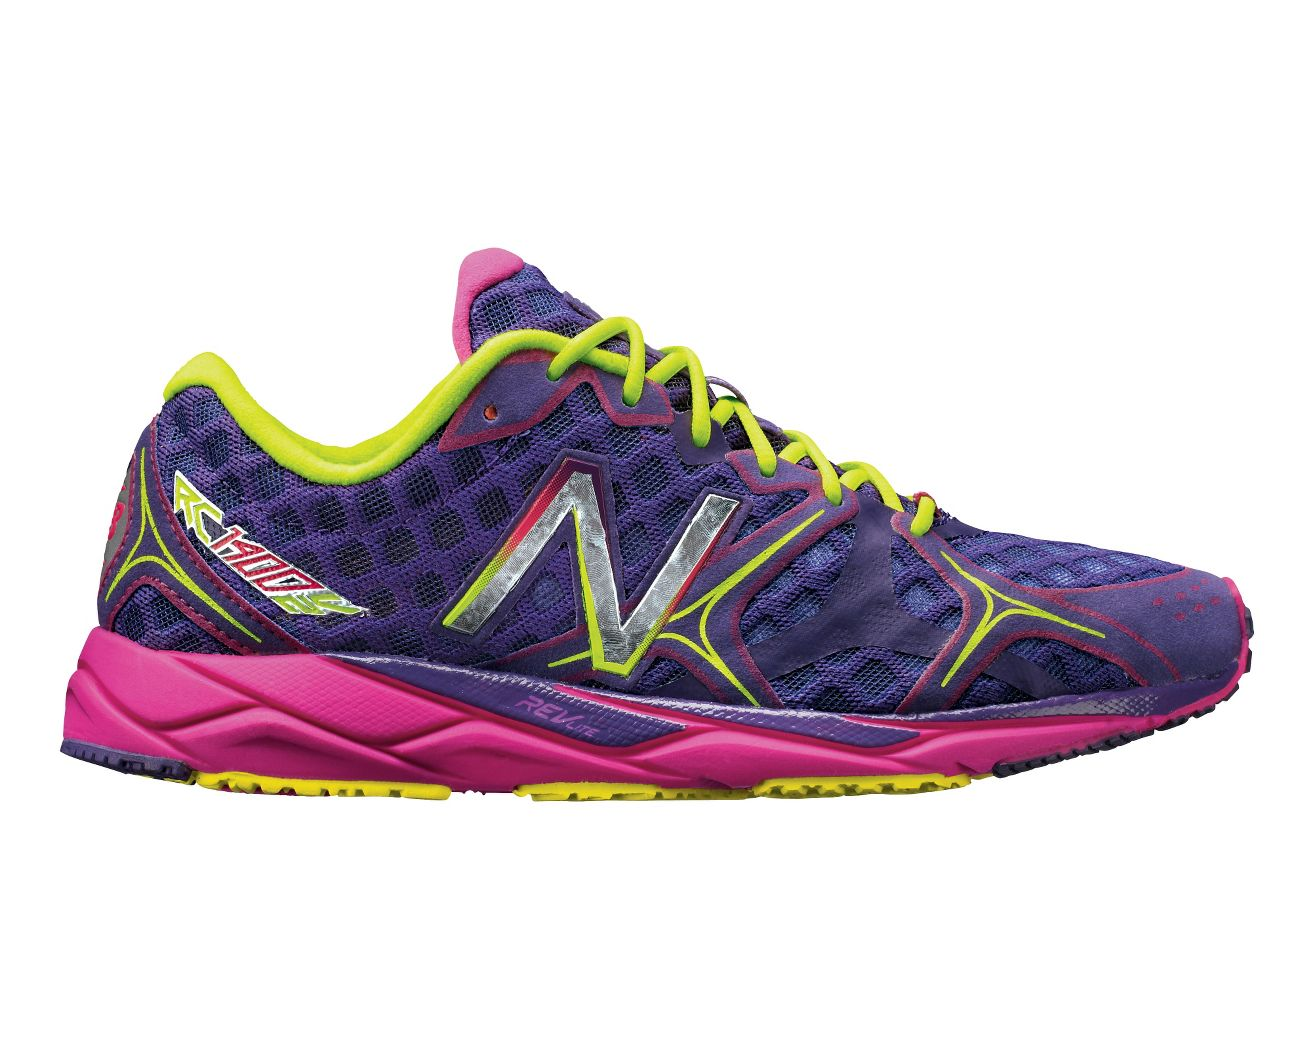 New Balance 1400v2 Ladies Running Shoes